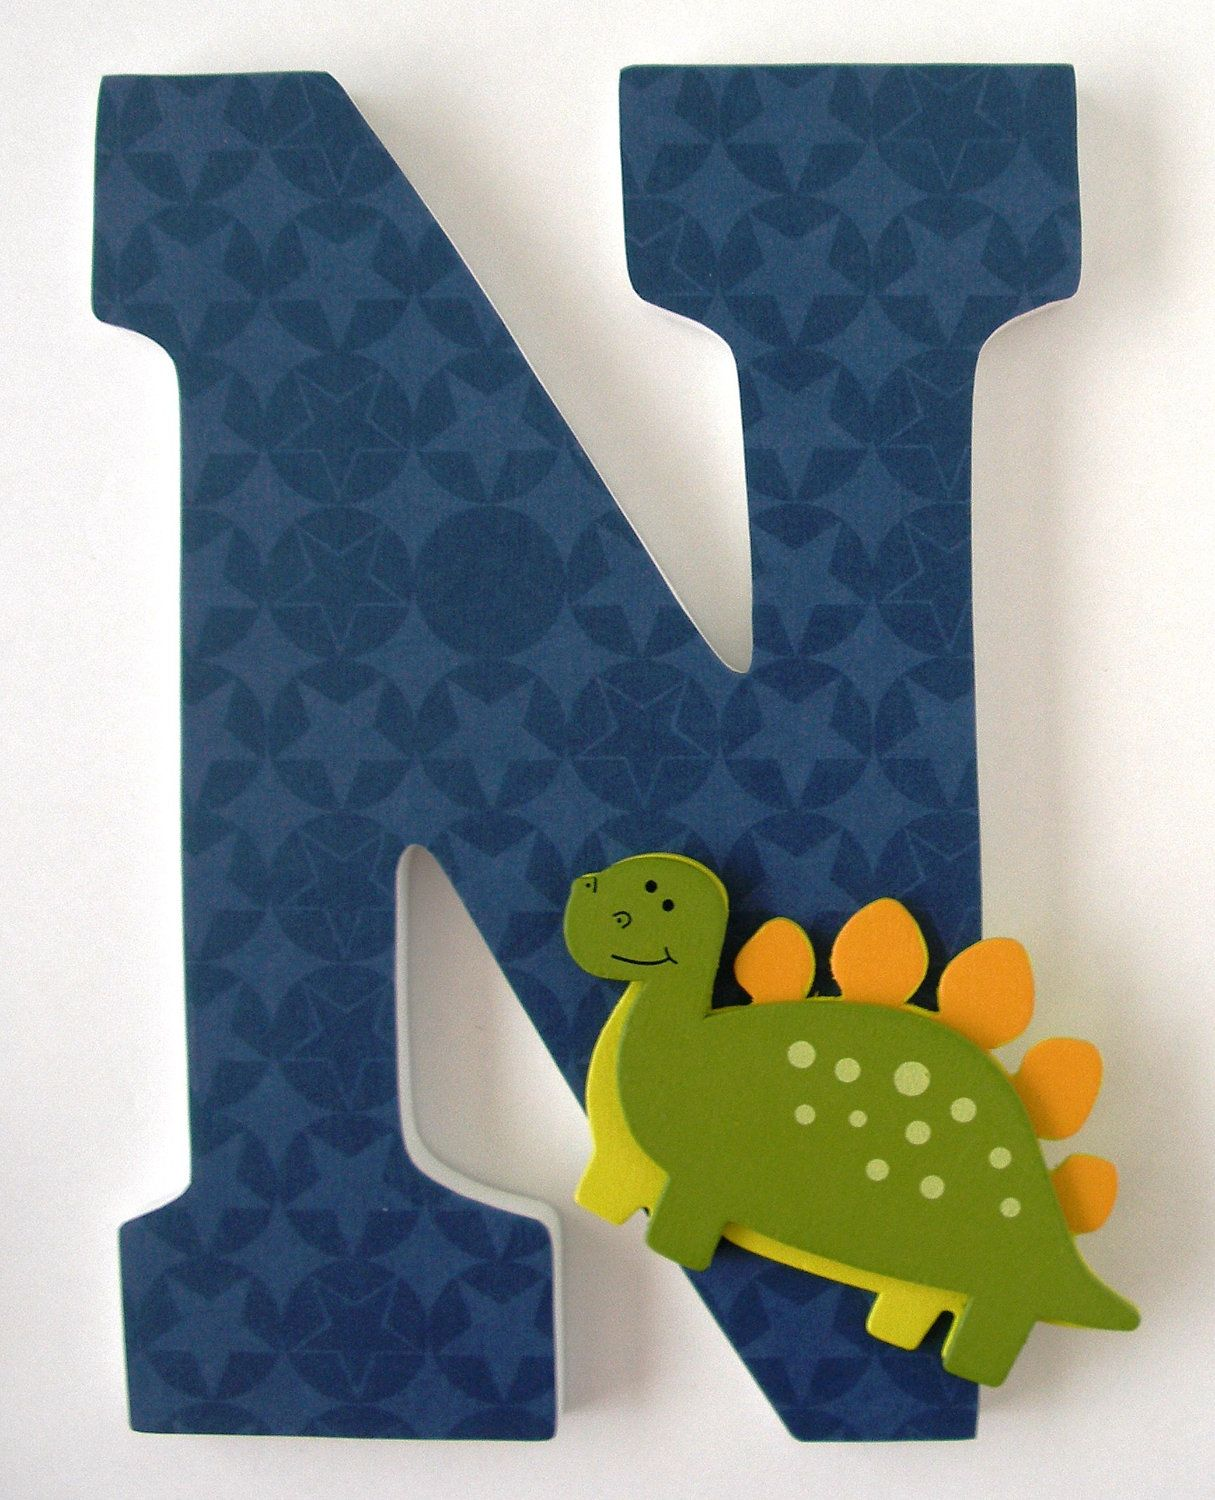 Personalized Bedroom Decor Wooden Letters For Nursery Dinosaur Theme Custom Decorated